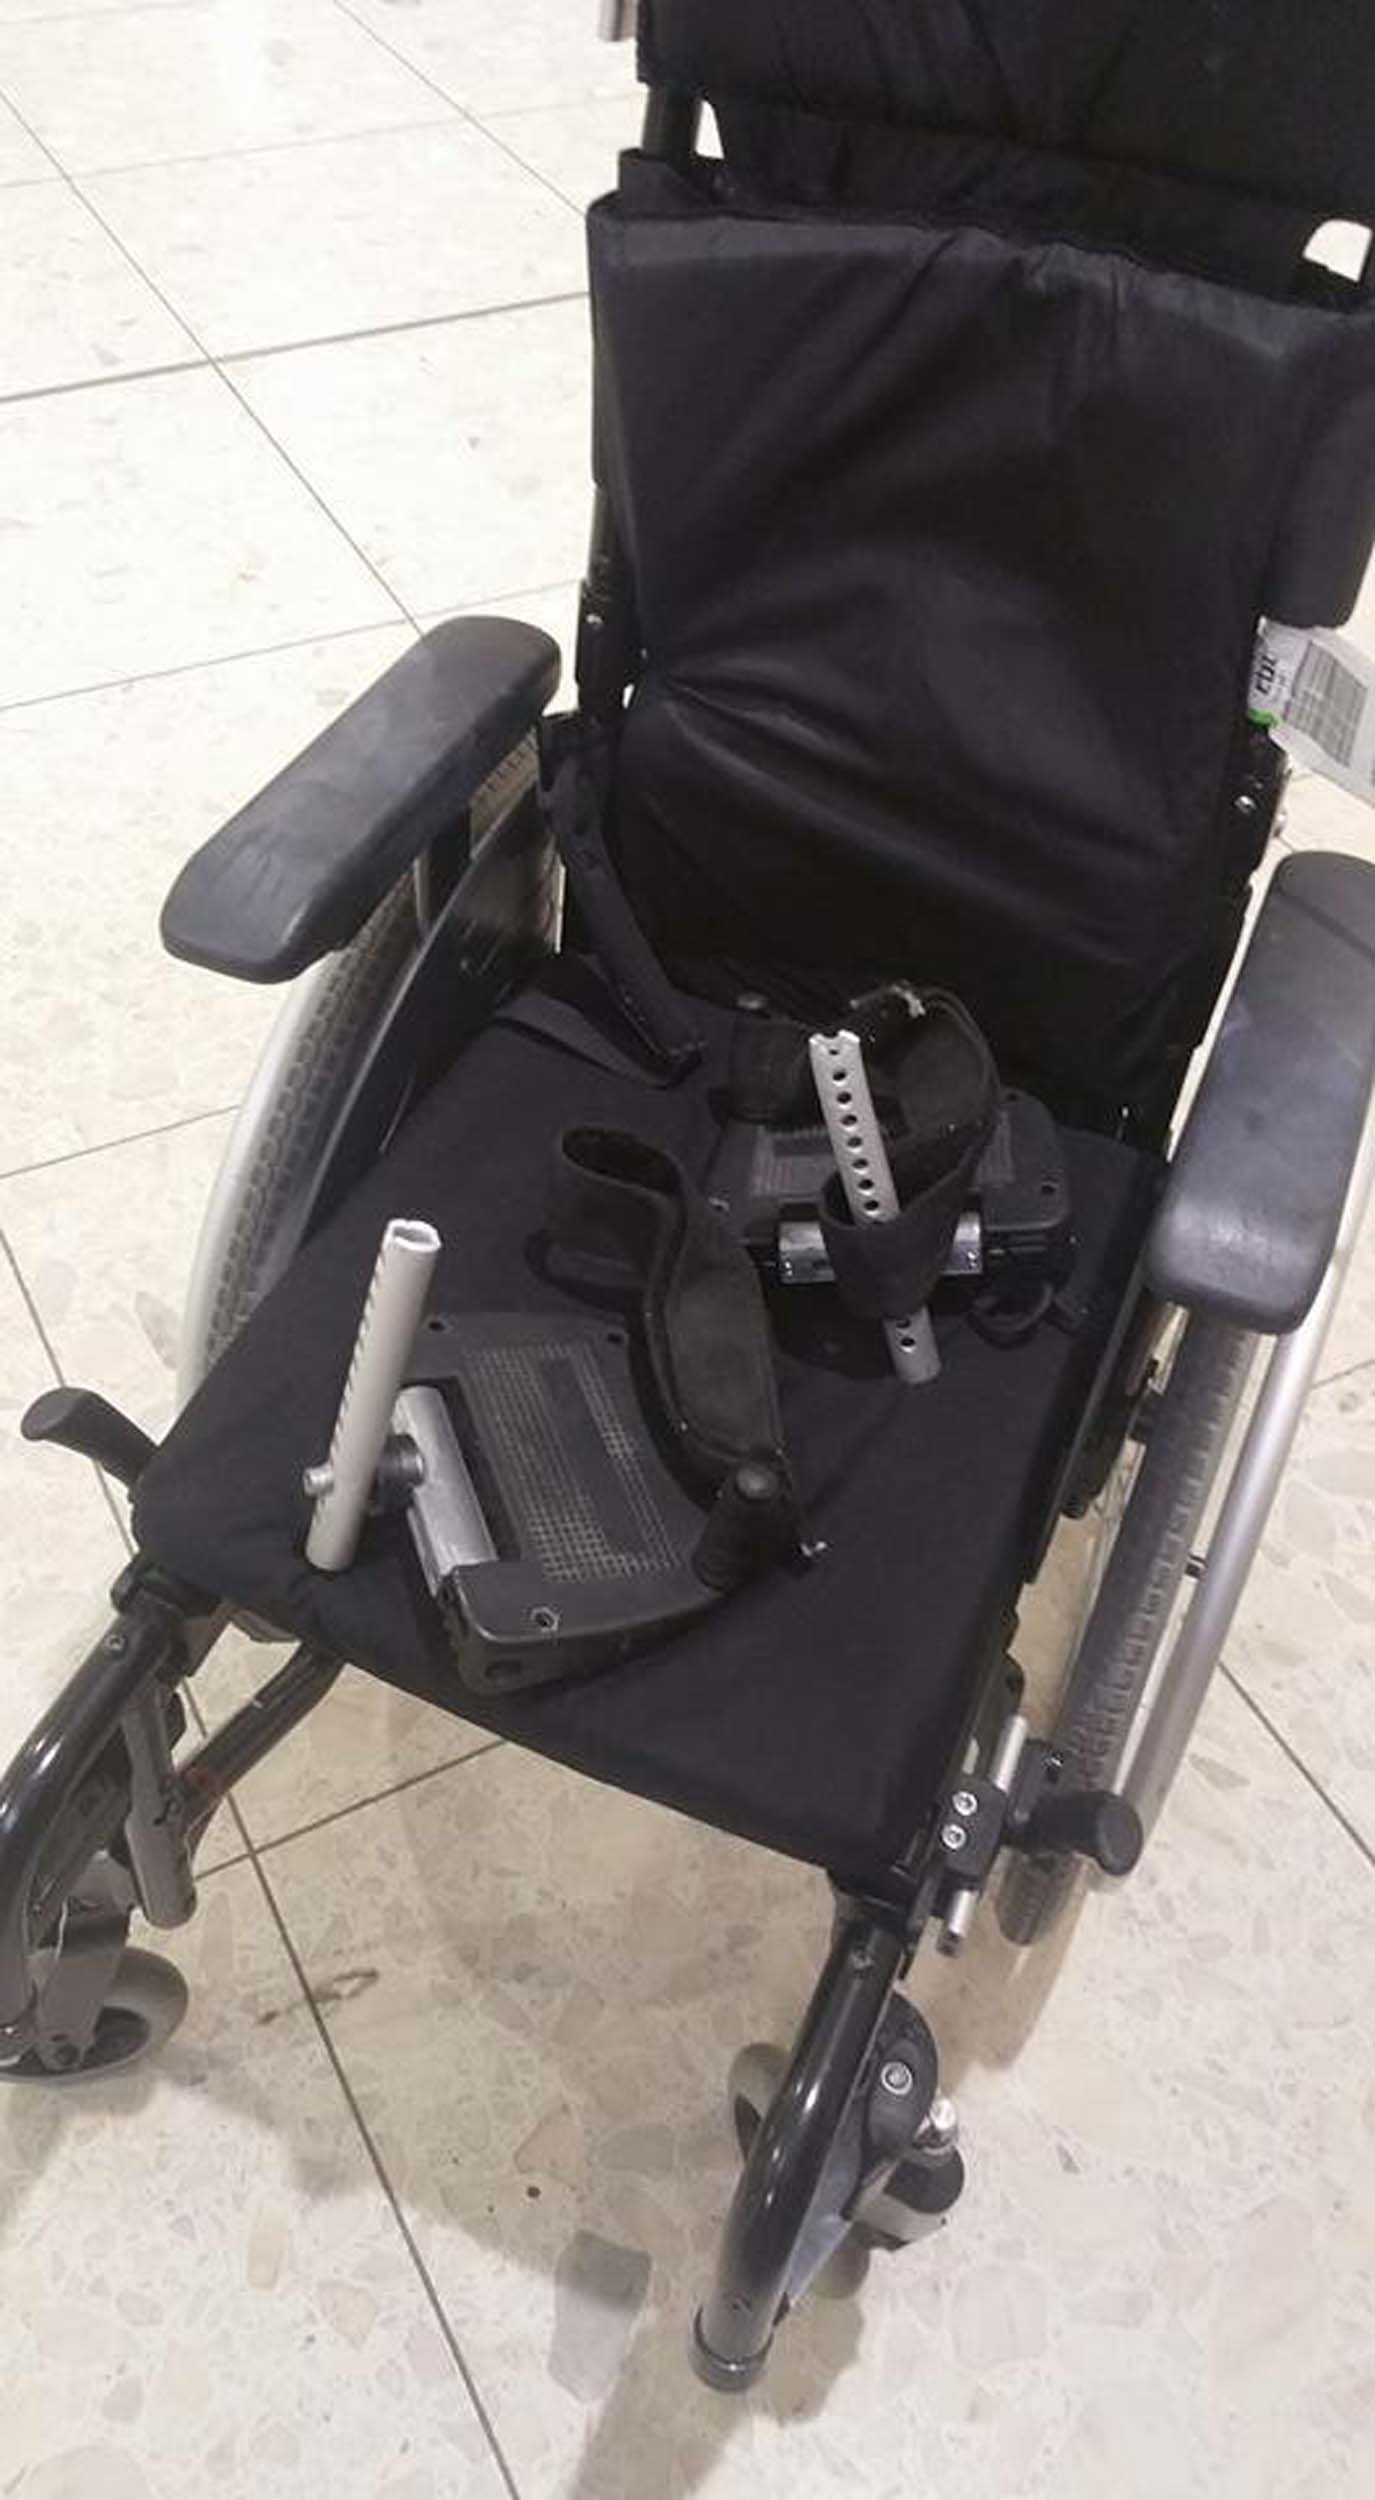 The broken wheelchair